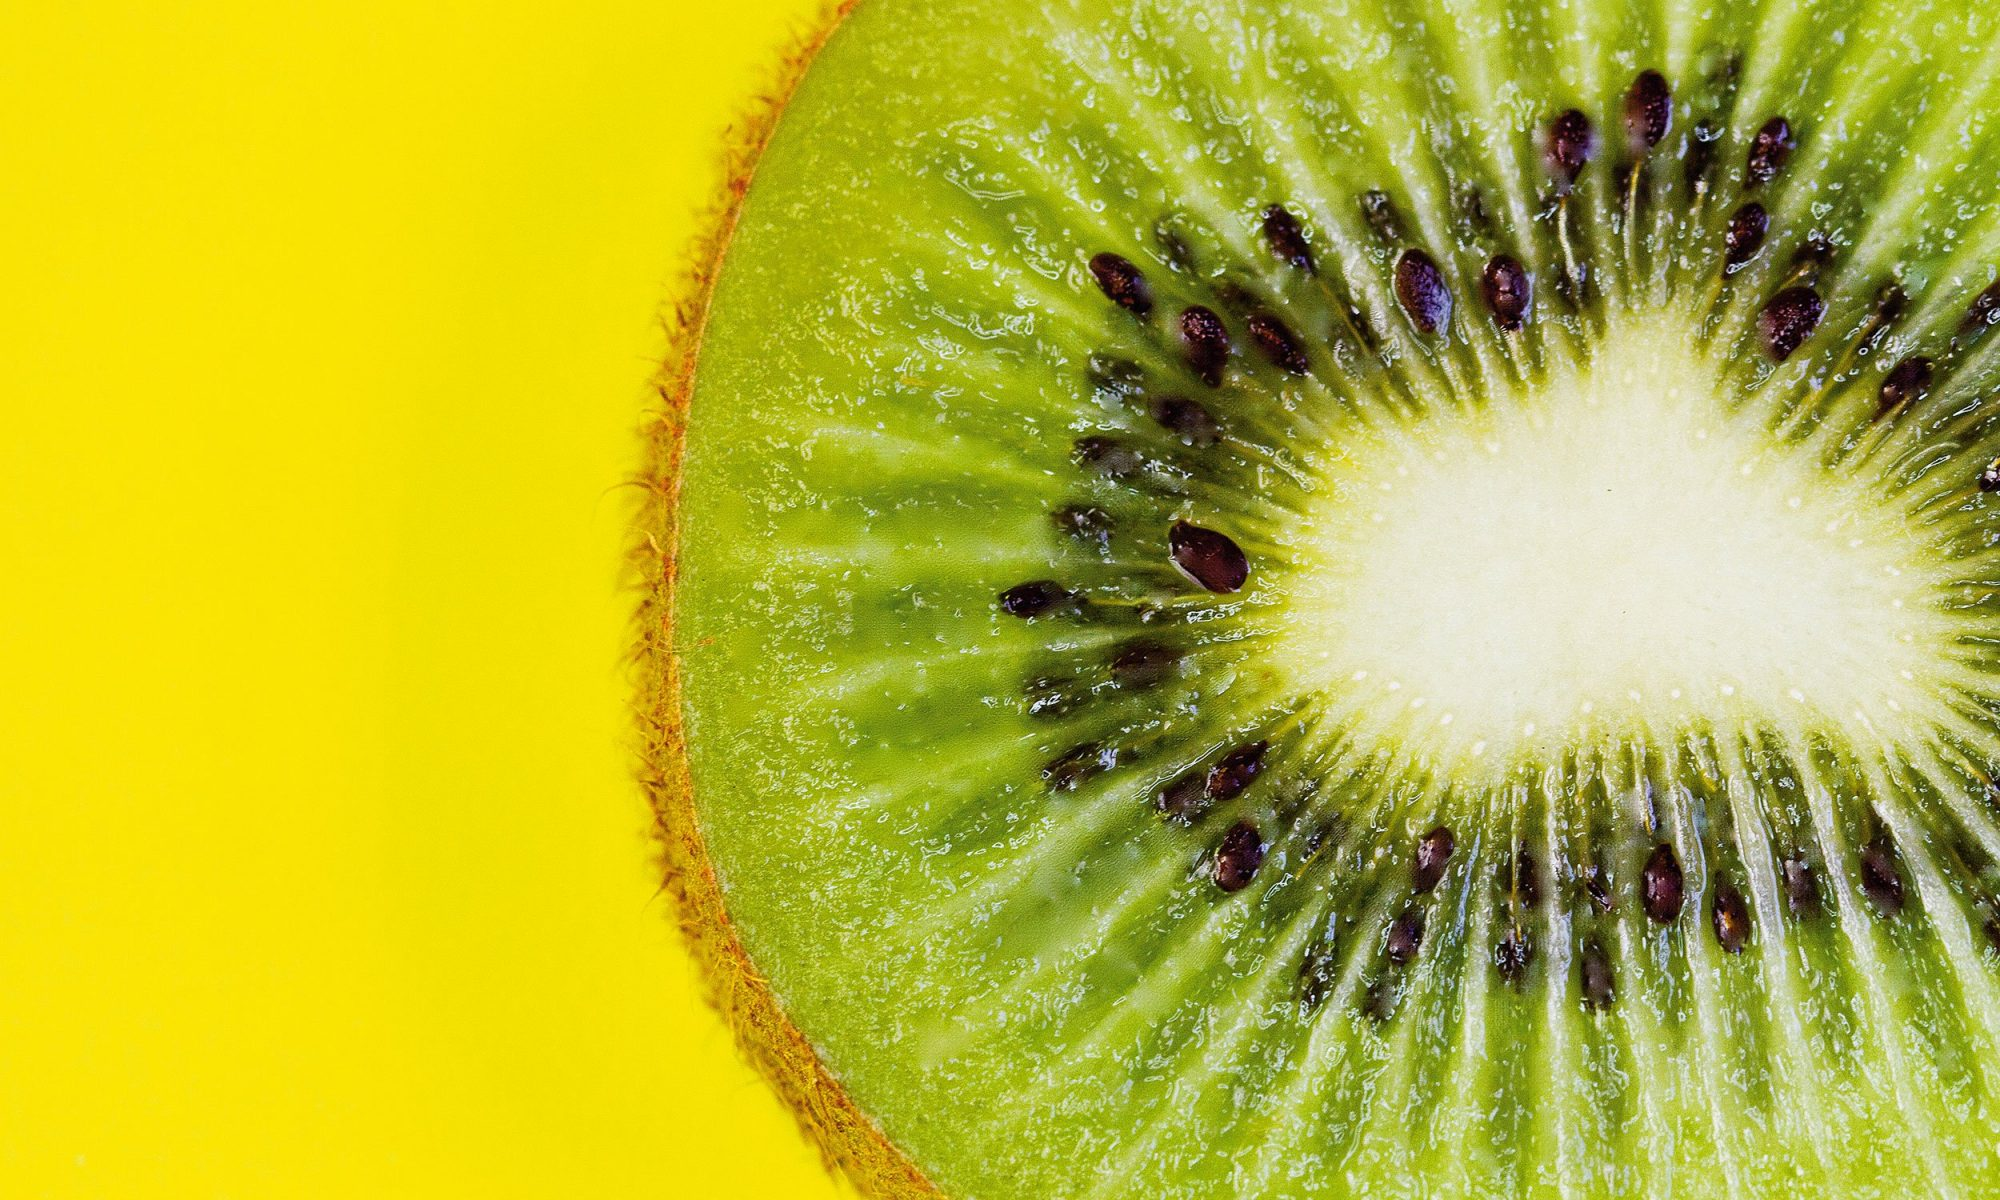 EC: How to Tell If a Kiwi Is Ripe